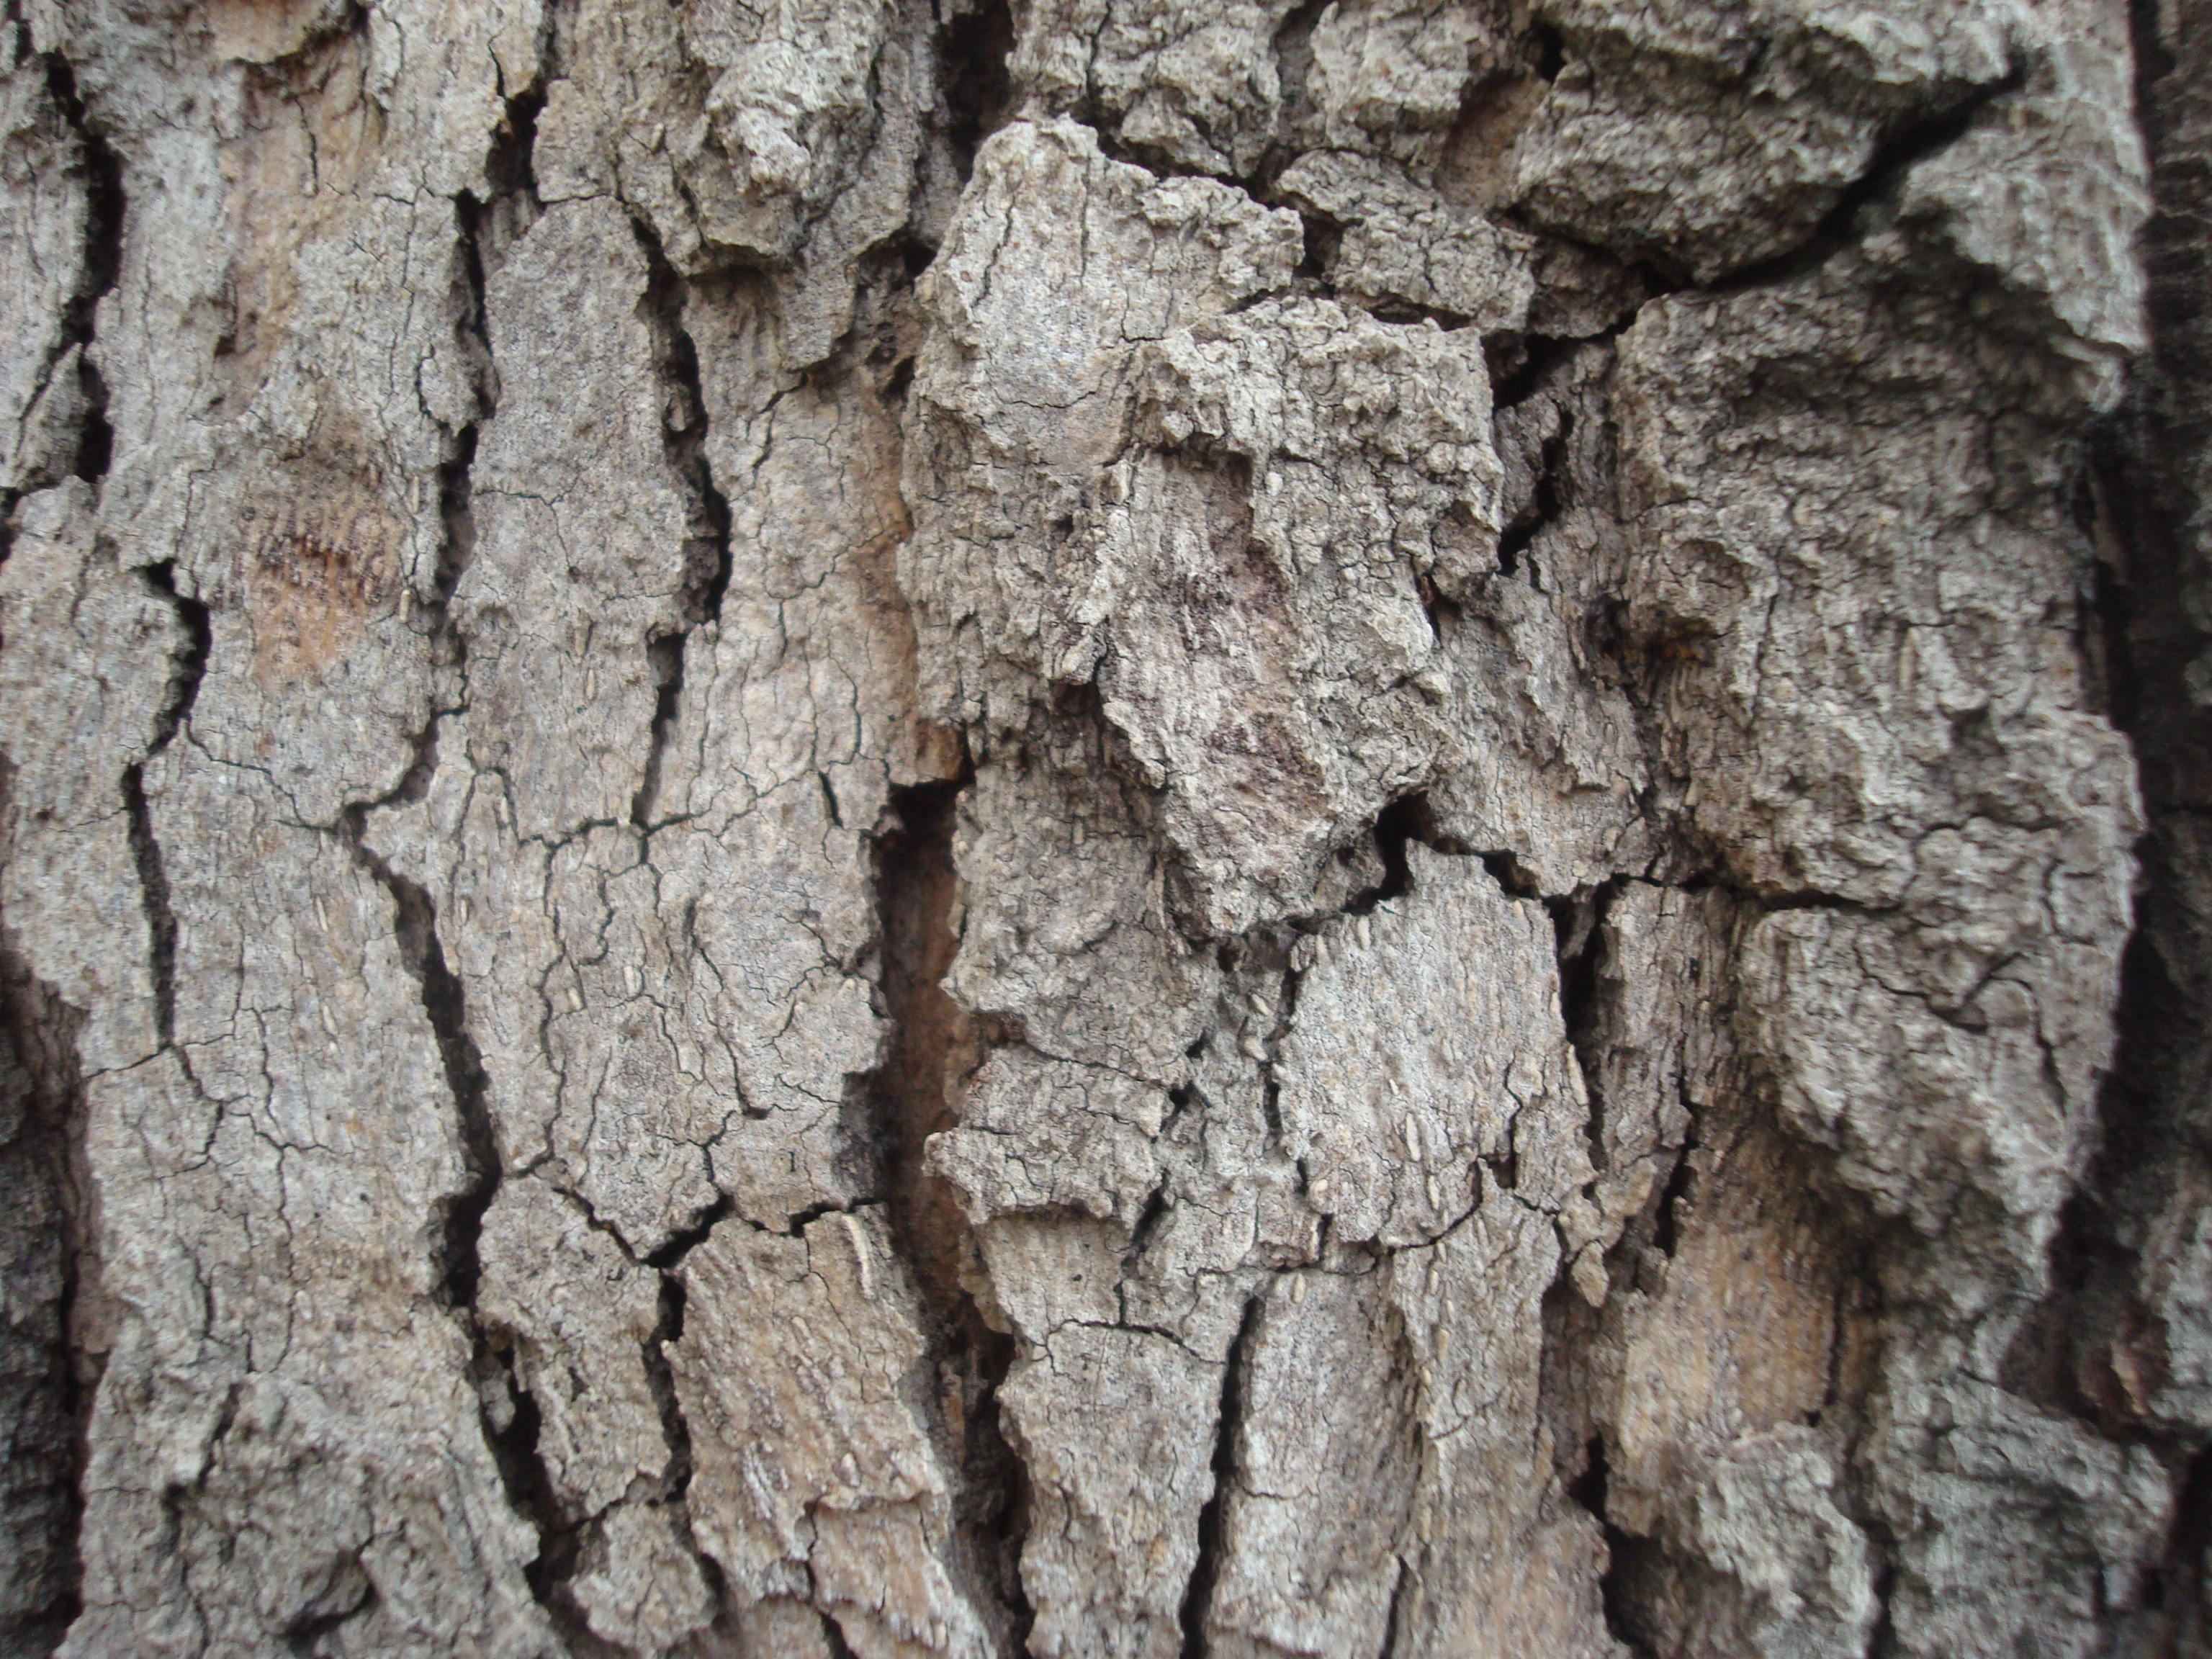 Dry wood texture, Brown, Close-up, Dark, Dry, HQ Photo